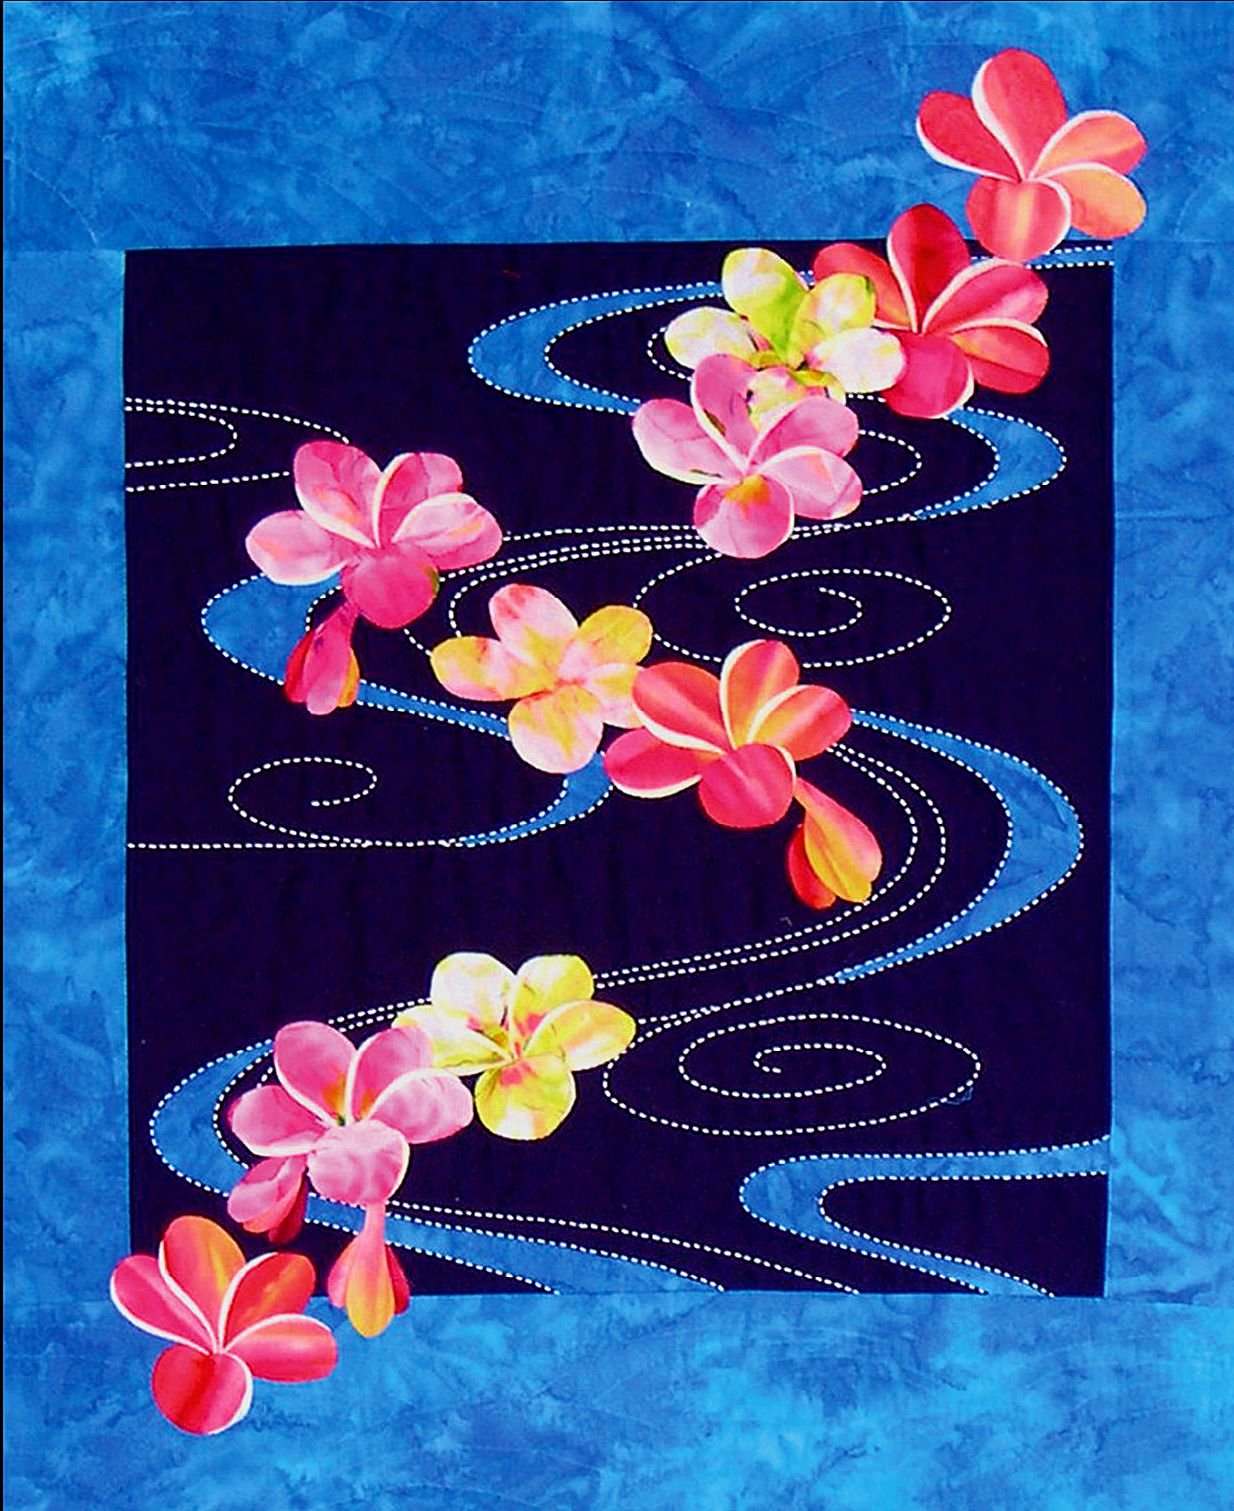 Plumeria floating on water pre printed sashiko applique fabric kit m4hsunfo